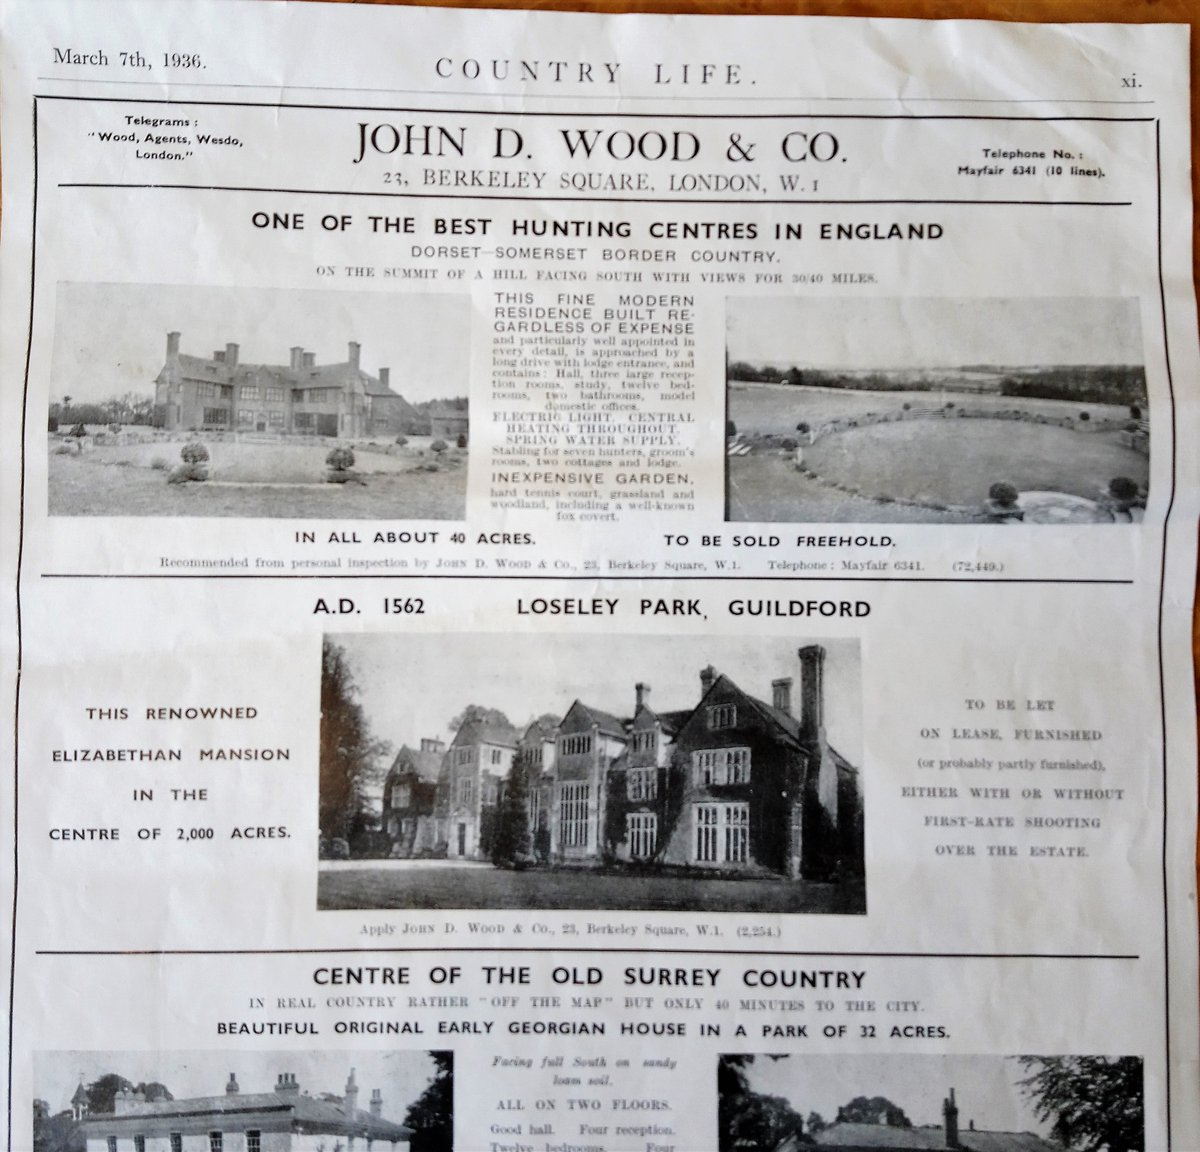 #TBT #ThrowbackThursdays For a very brief time the house had tenants. An American family who found that English country living wasn't to their taste & so didn't stay long! @johndwoodandco in Mayfair handled the let & advertised in 7 March 1936 edition of @Countrylifemag